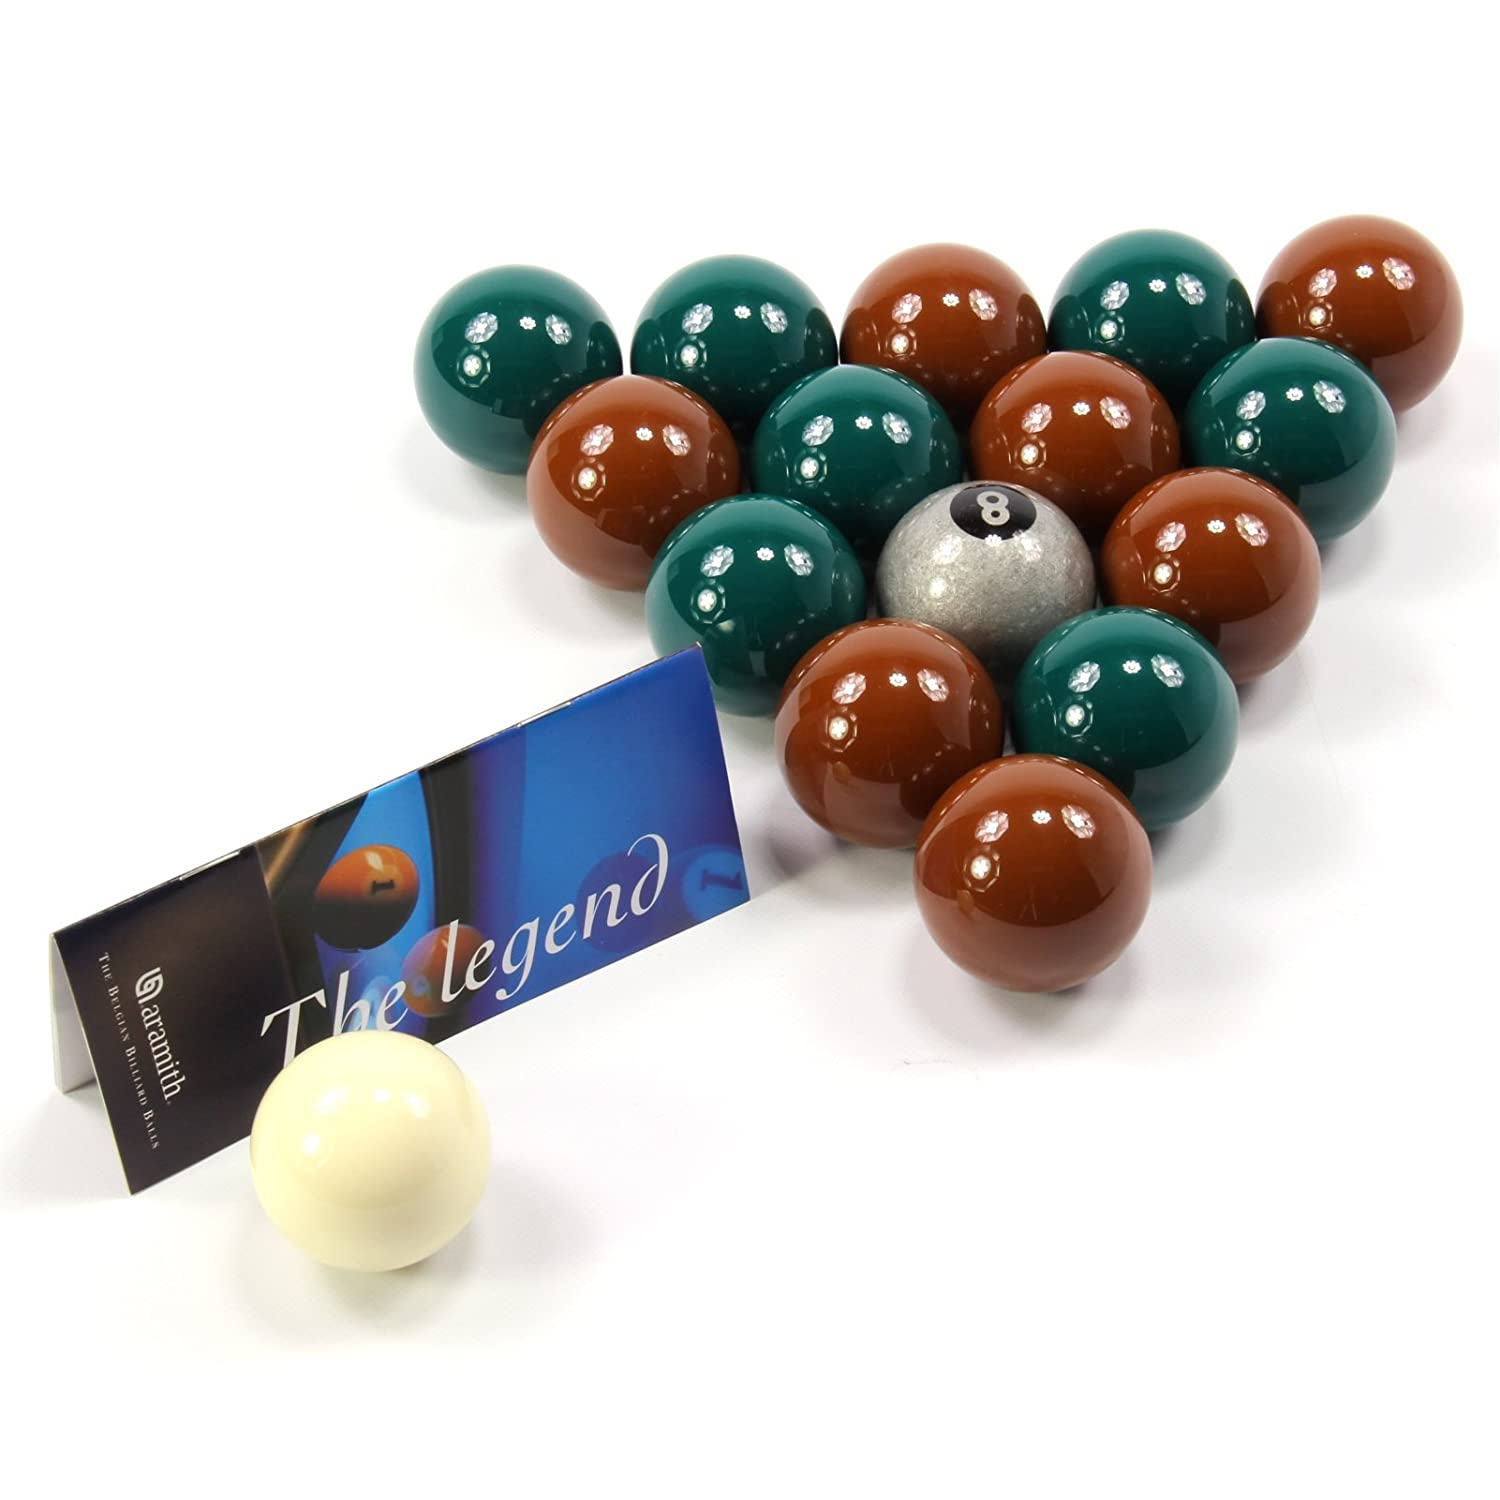 EXCLUSIVE! Aramith Premier SILVER 8 BALL Edition GREEN & BROWN Pool Balls by Aramith